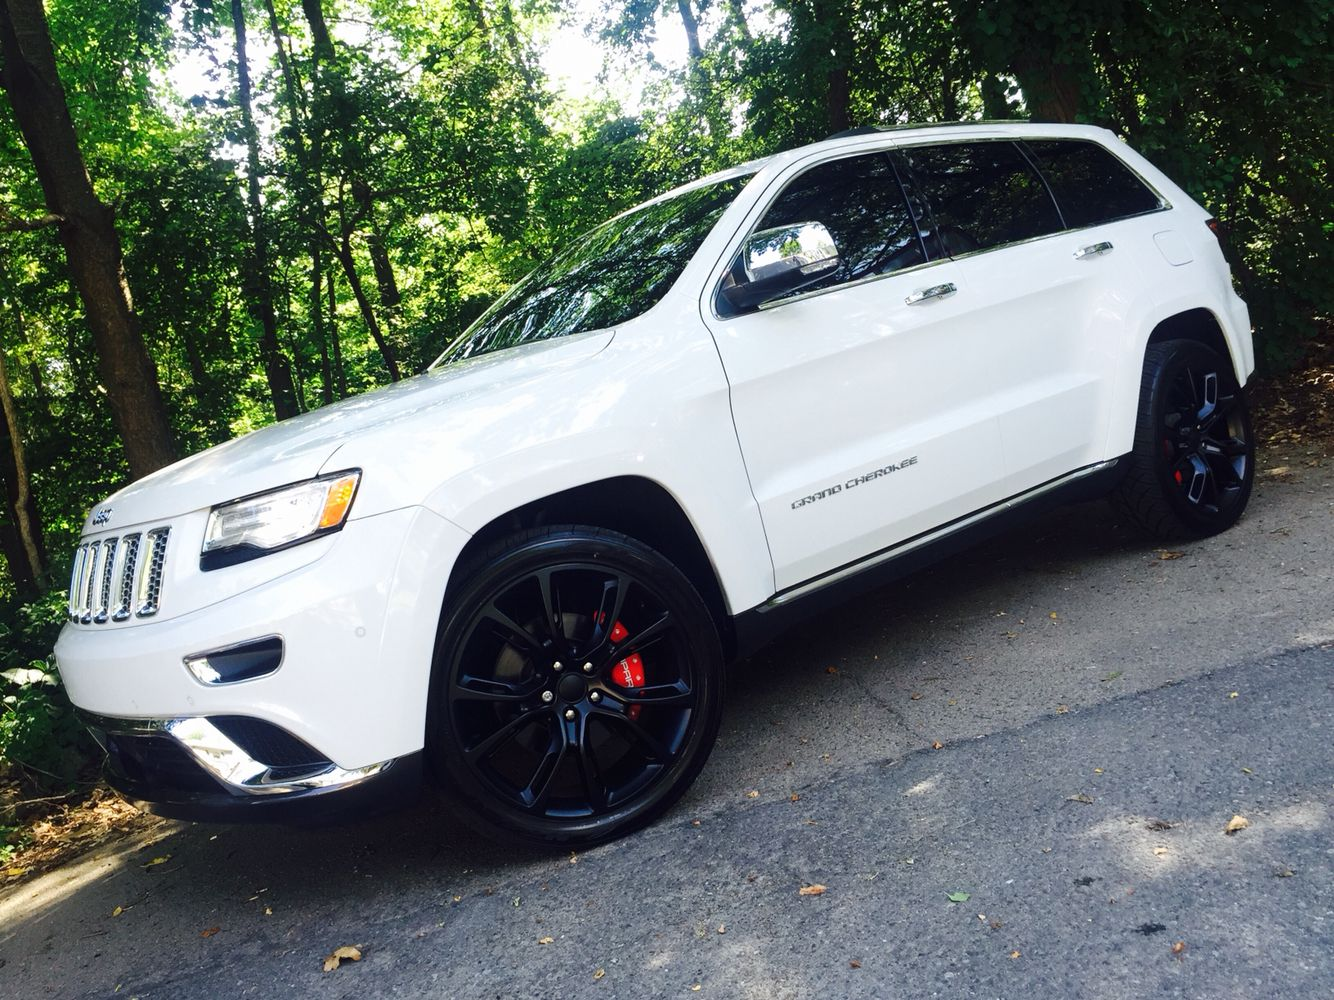 Jeep Srt8 Replica Wheels 22 >> White Car Black Rims Red Calipers | www.pixshark.com - Images Galleries With A Bite!